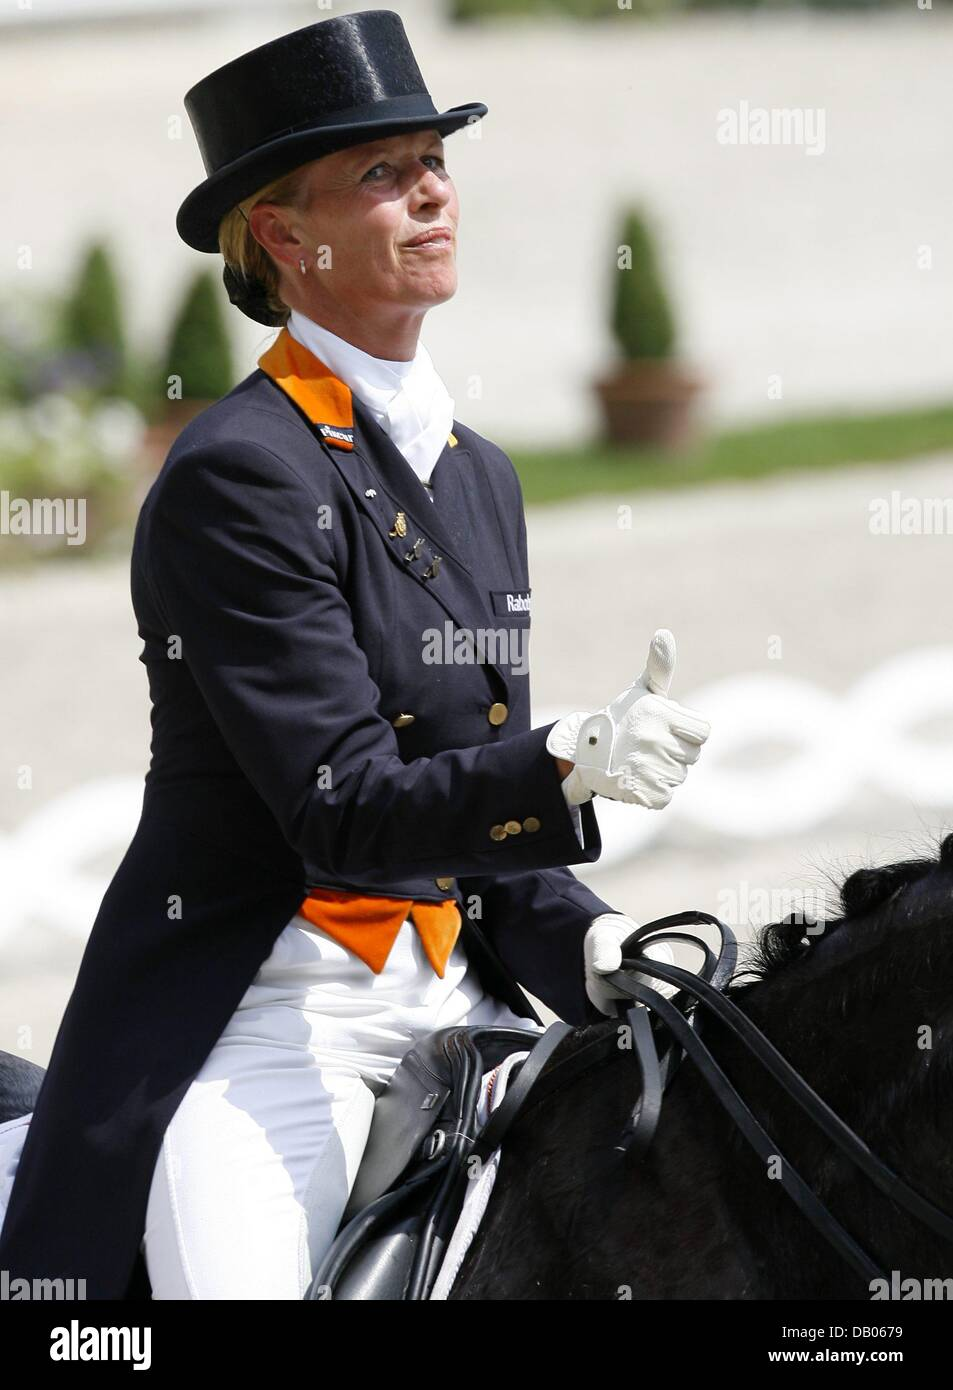 Dutch Dressage Rider Anky Van Grunsven On Her Horse